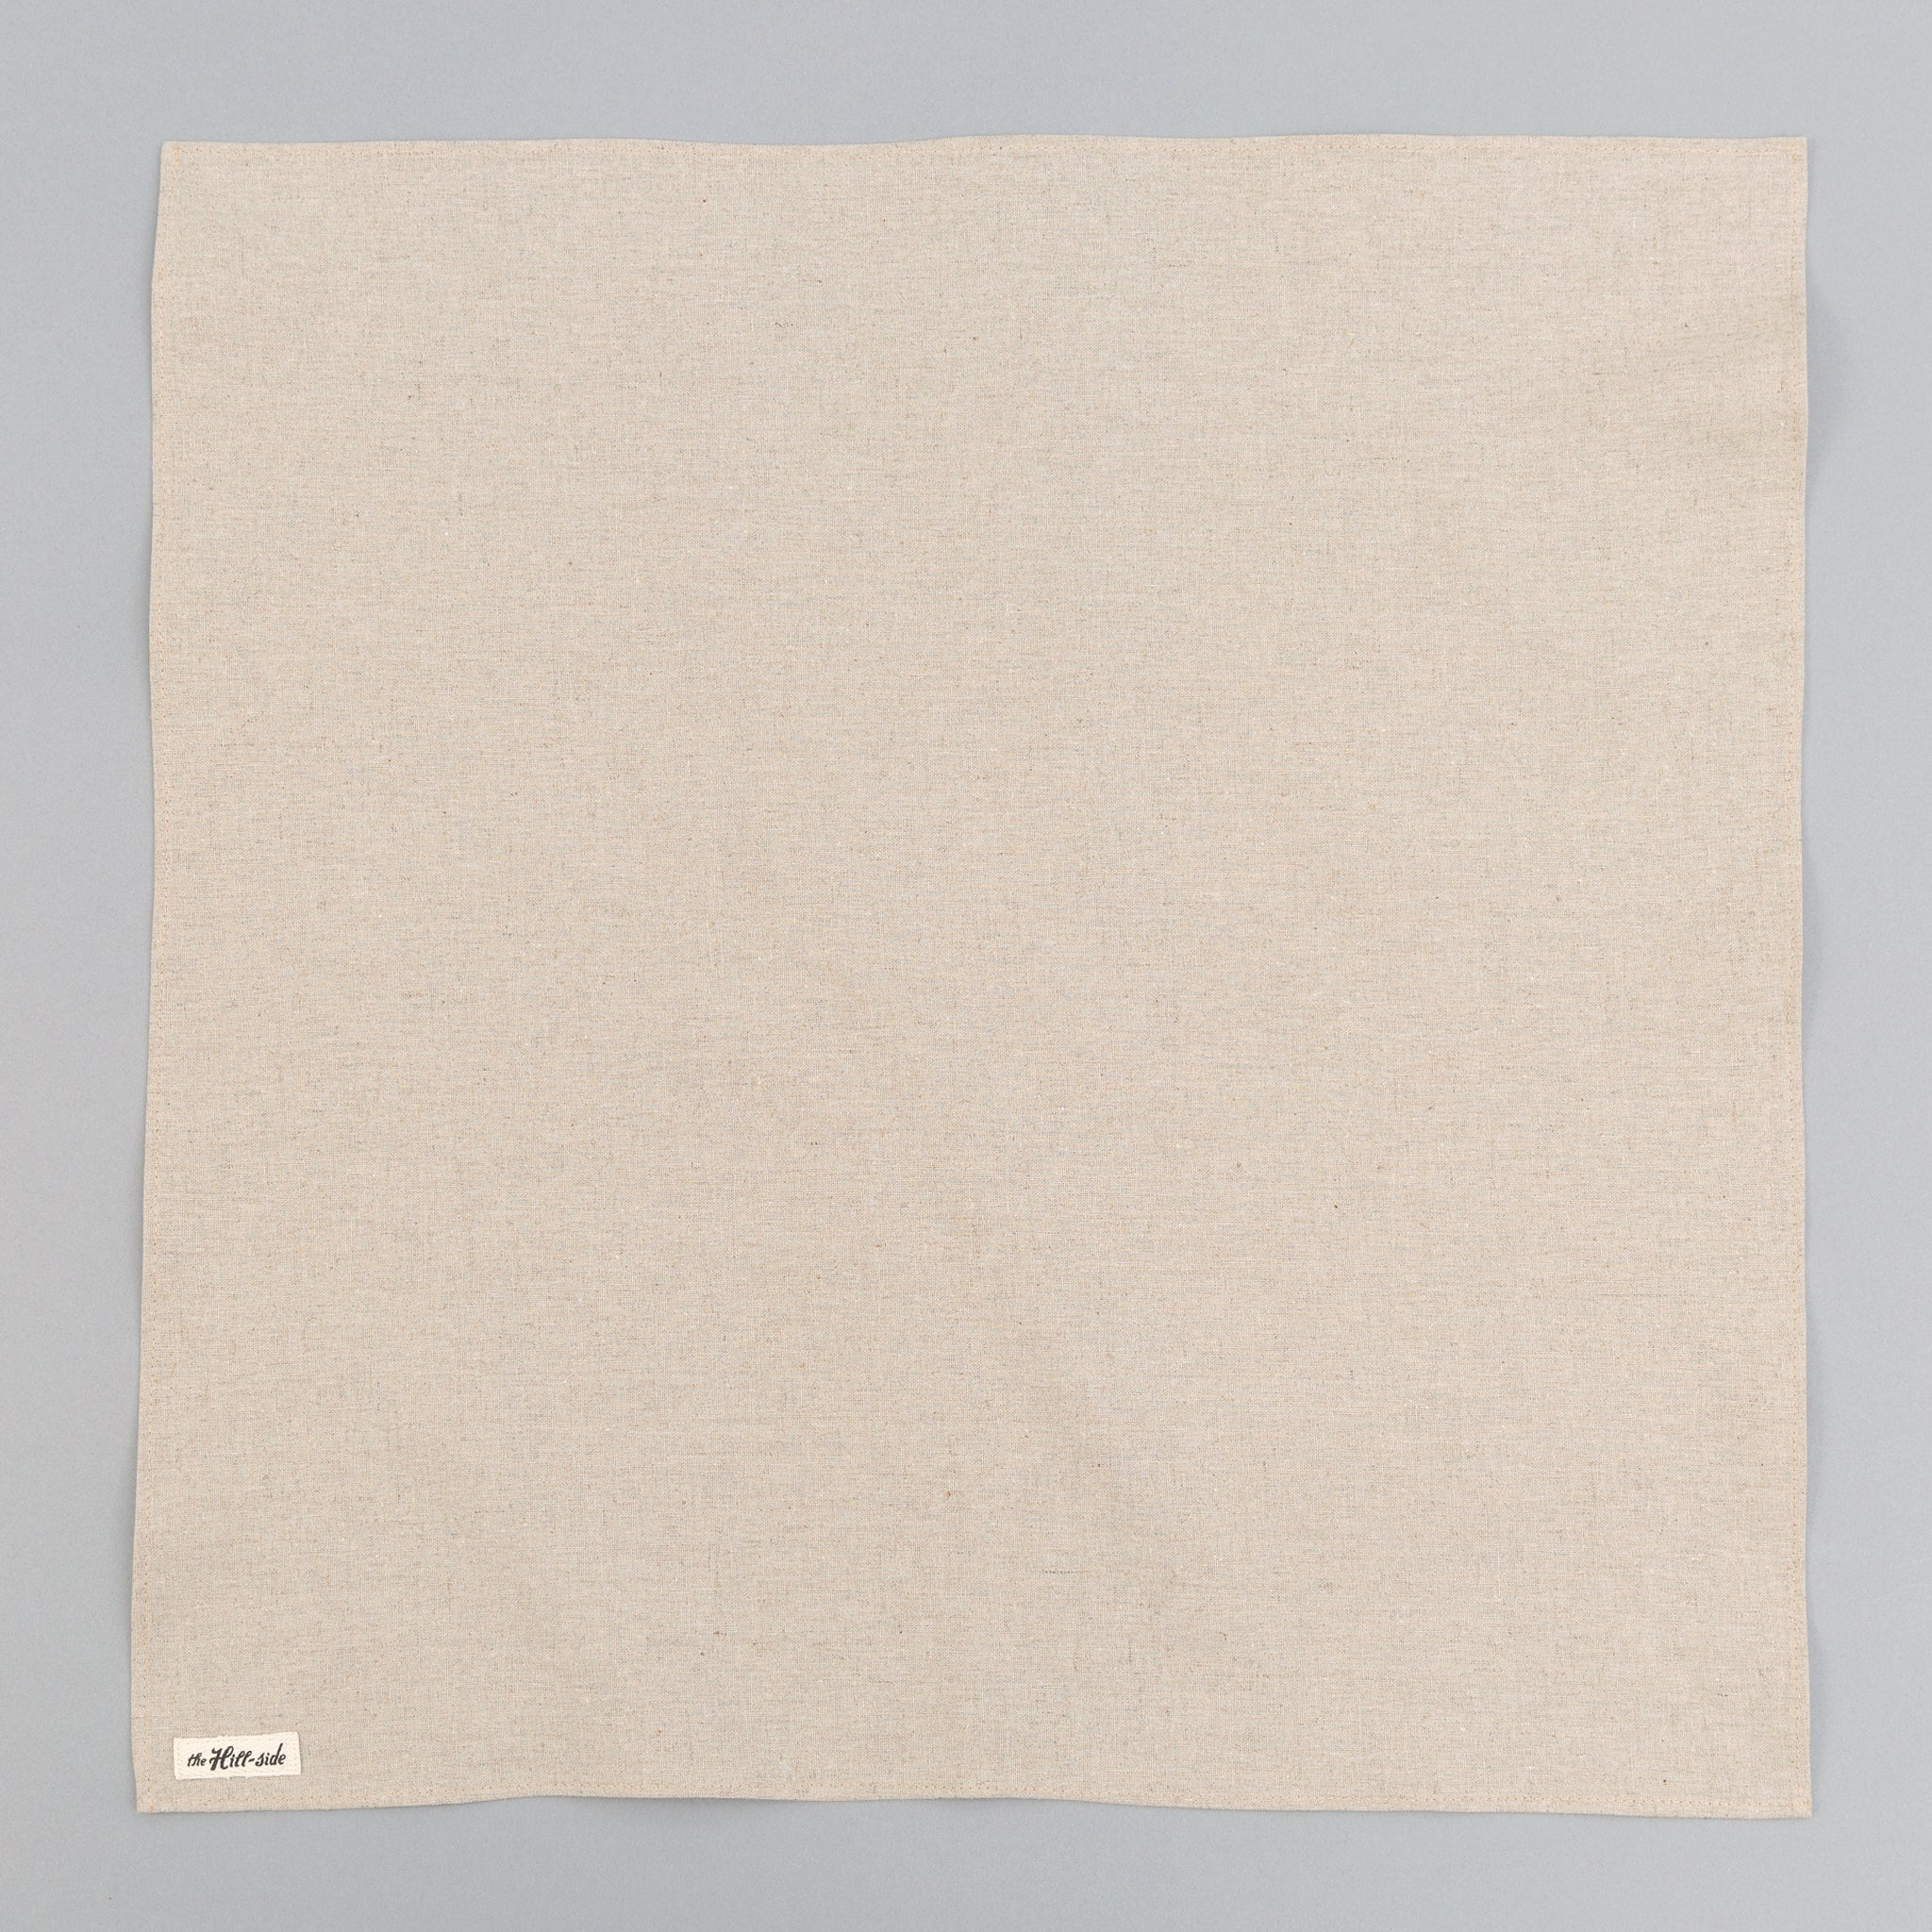 The Hill-Side - Linen / Cotton Oxford Bandana, Natural - BA1-416 - image 1